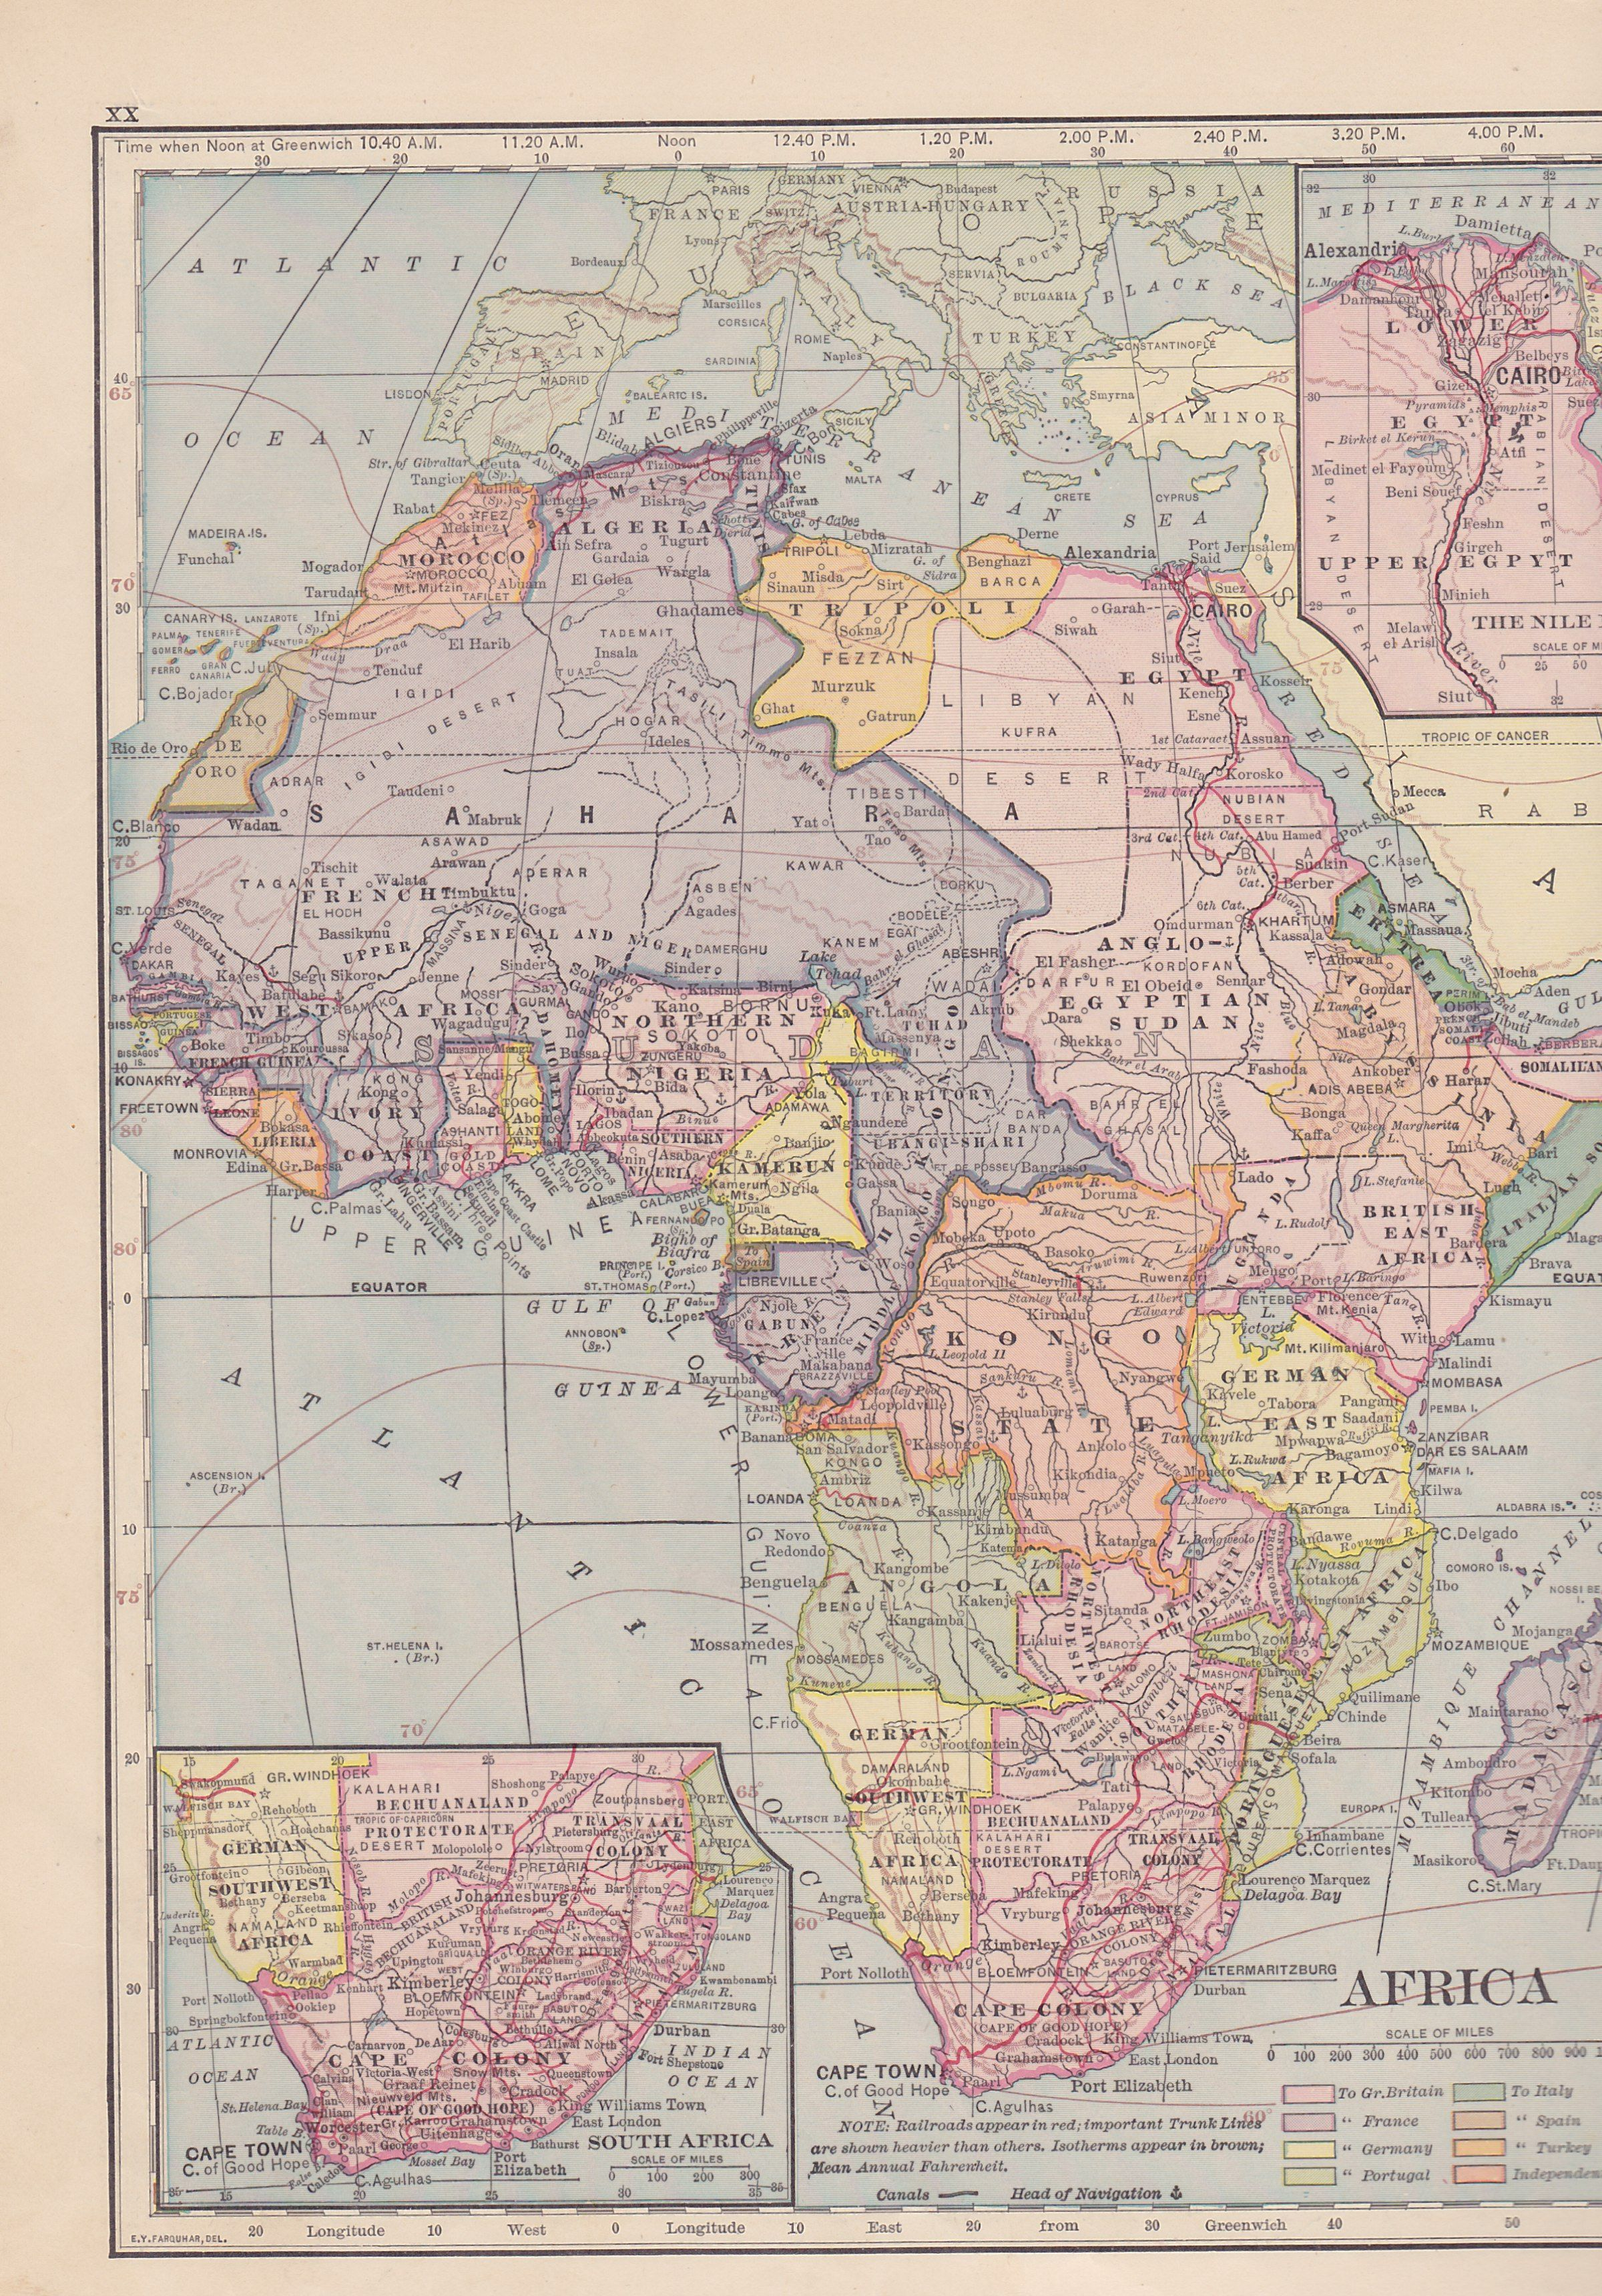 Advanced Geography of Africa